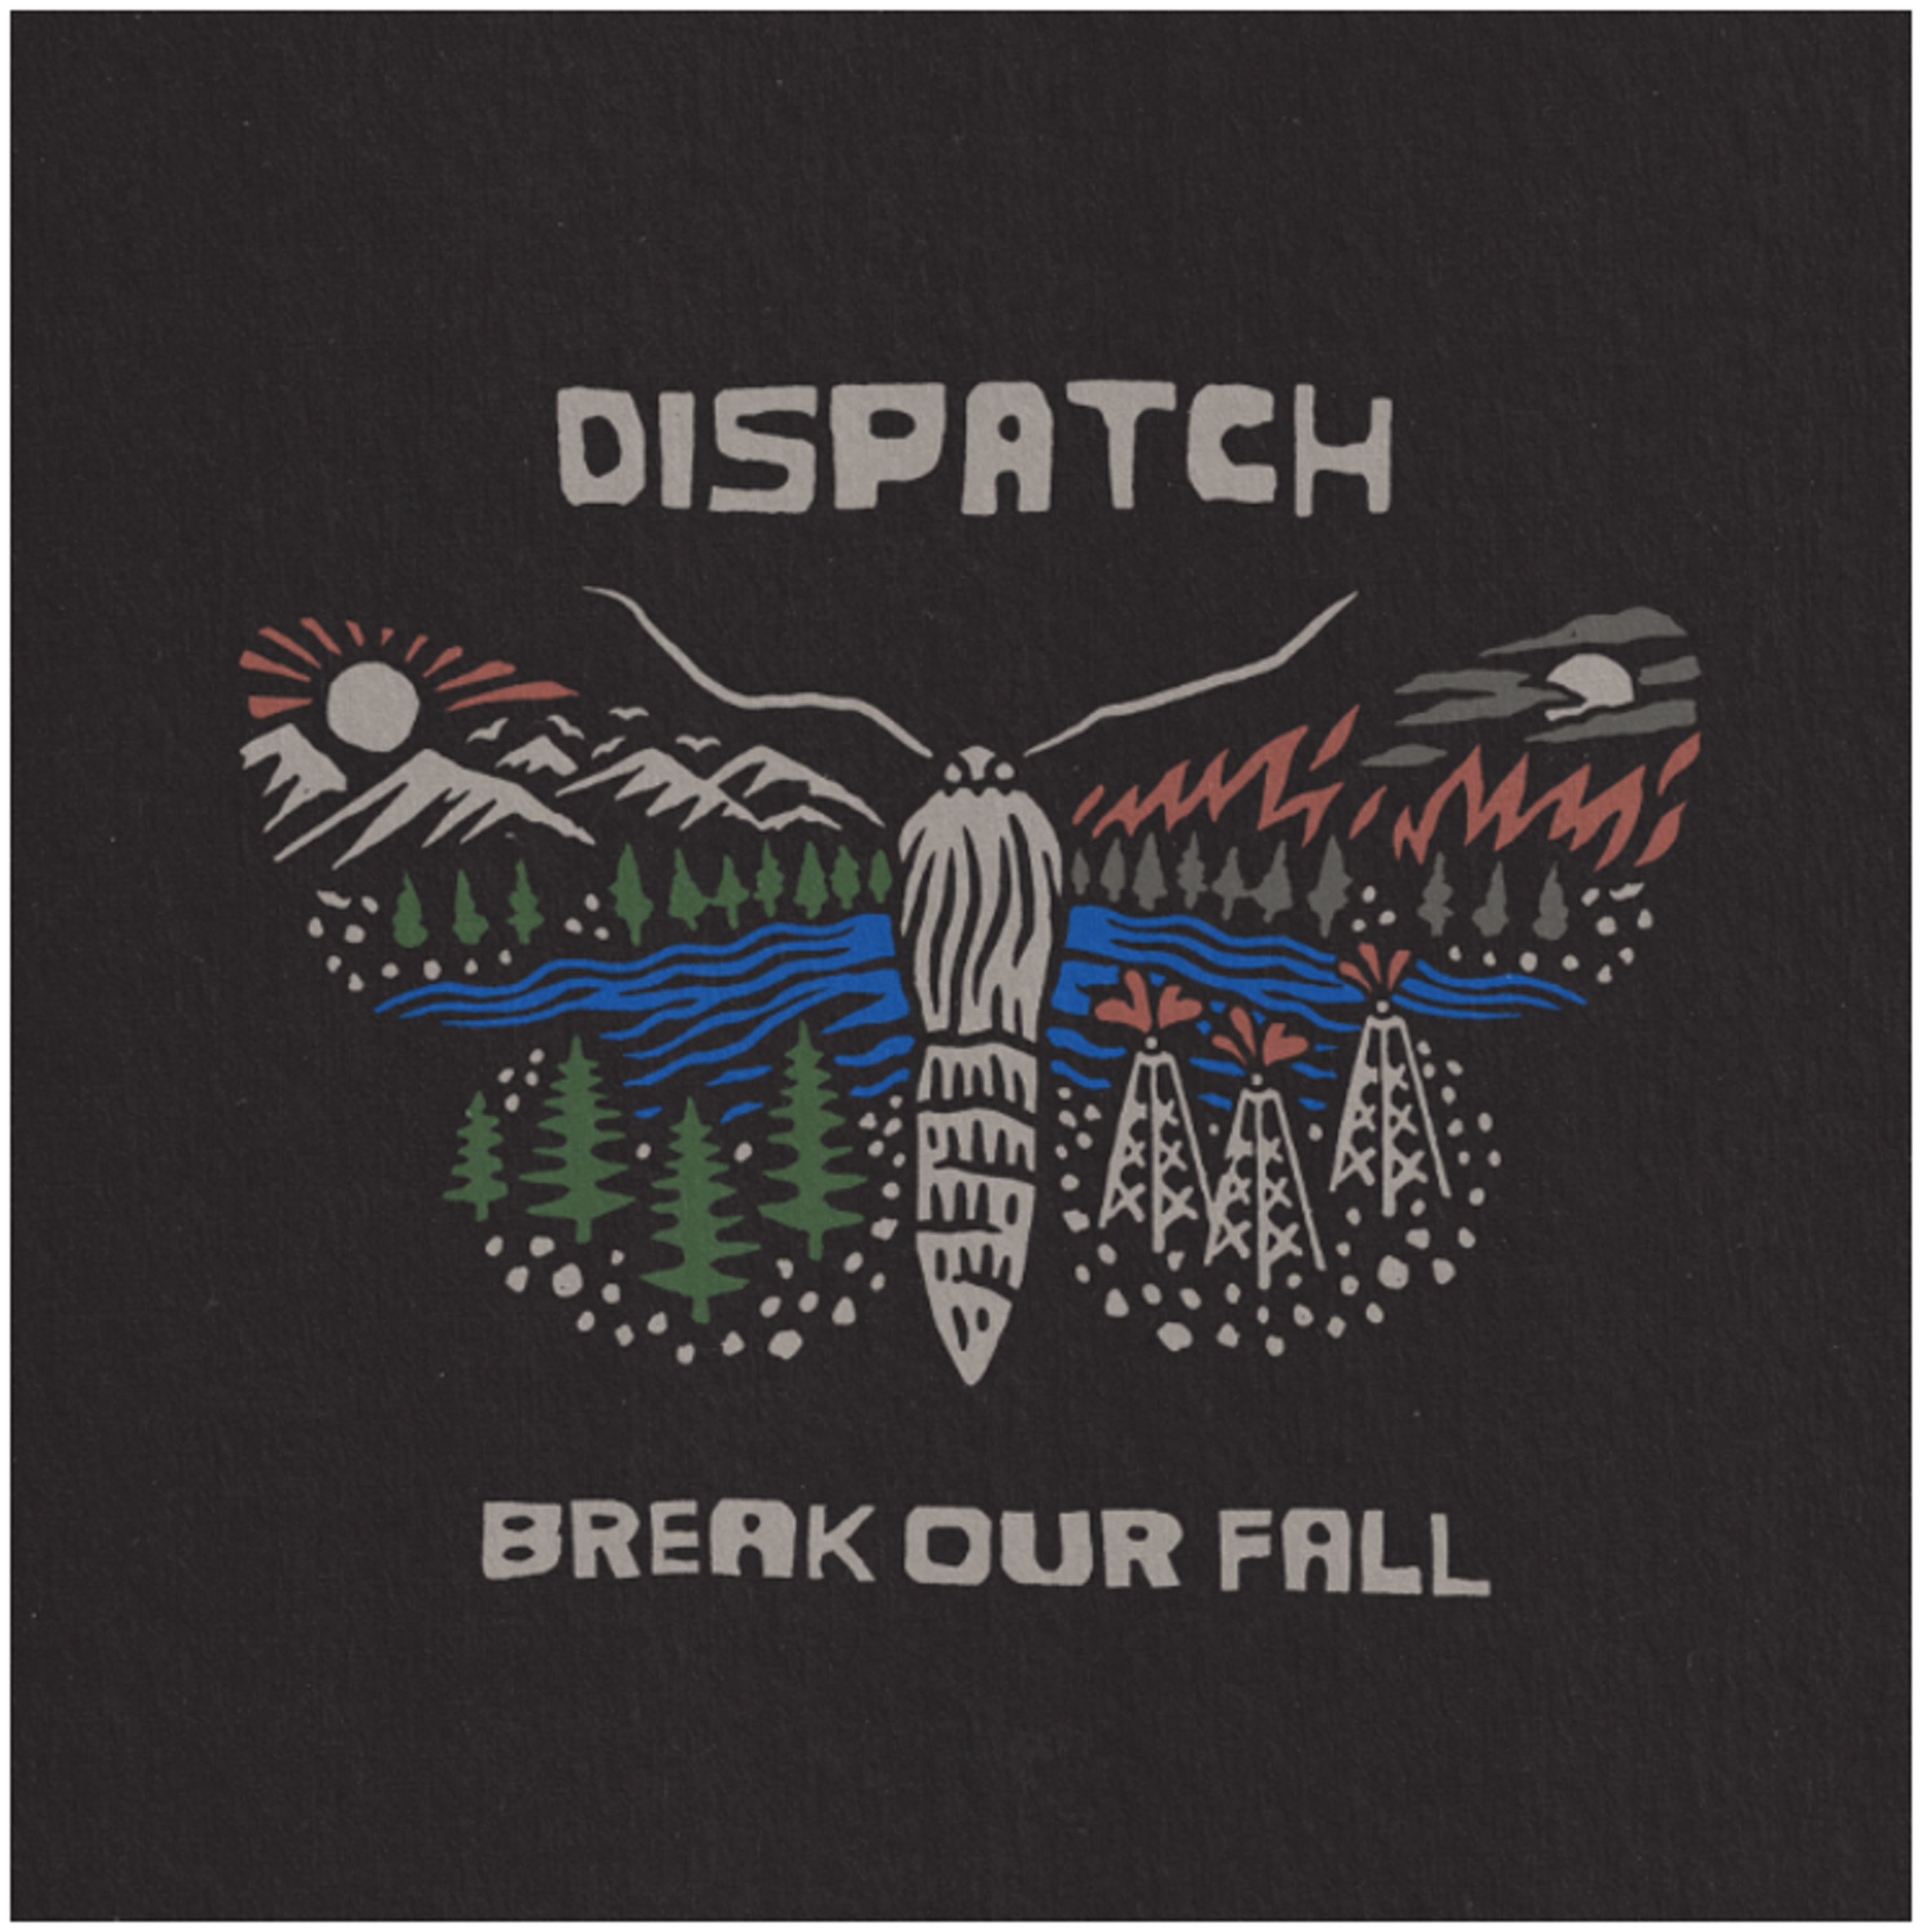 Dispatch To Release 8th Studio Album 'Break Our Fall' May 28